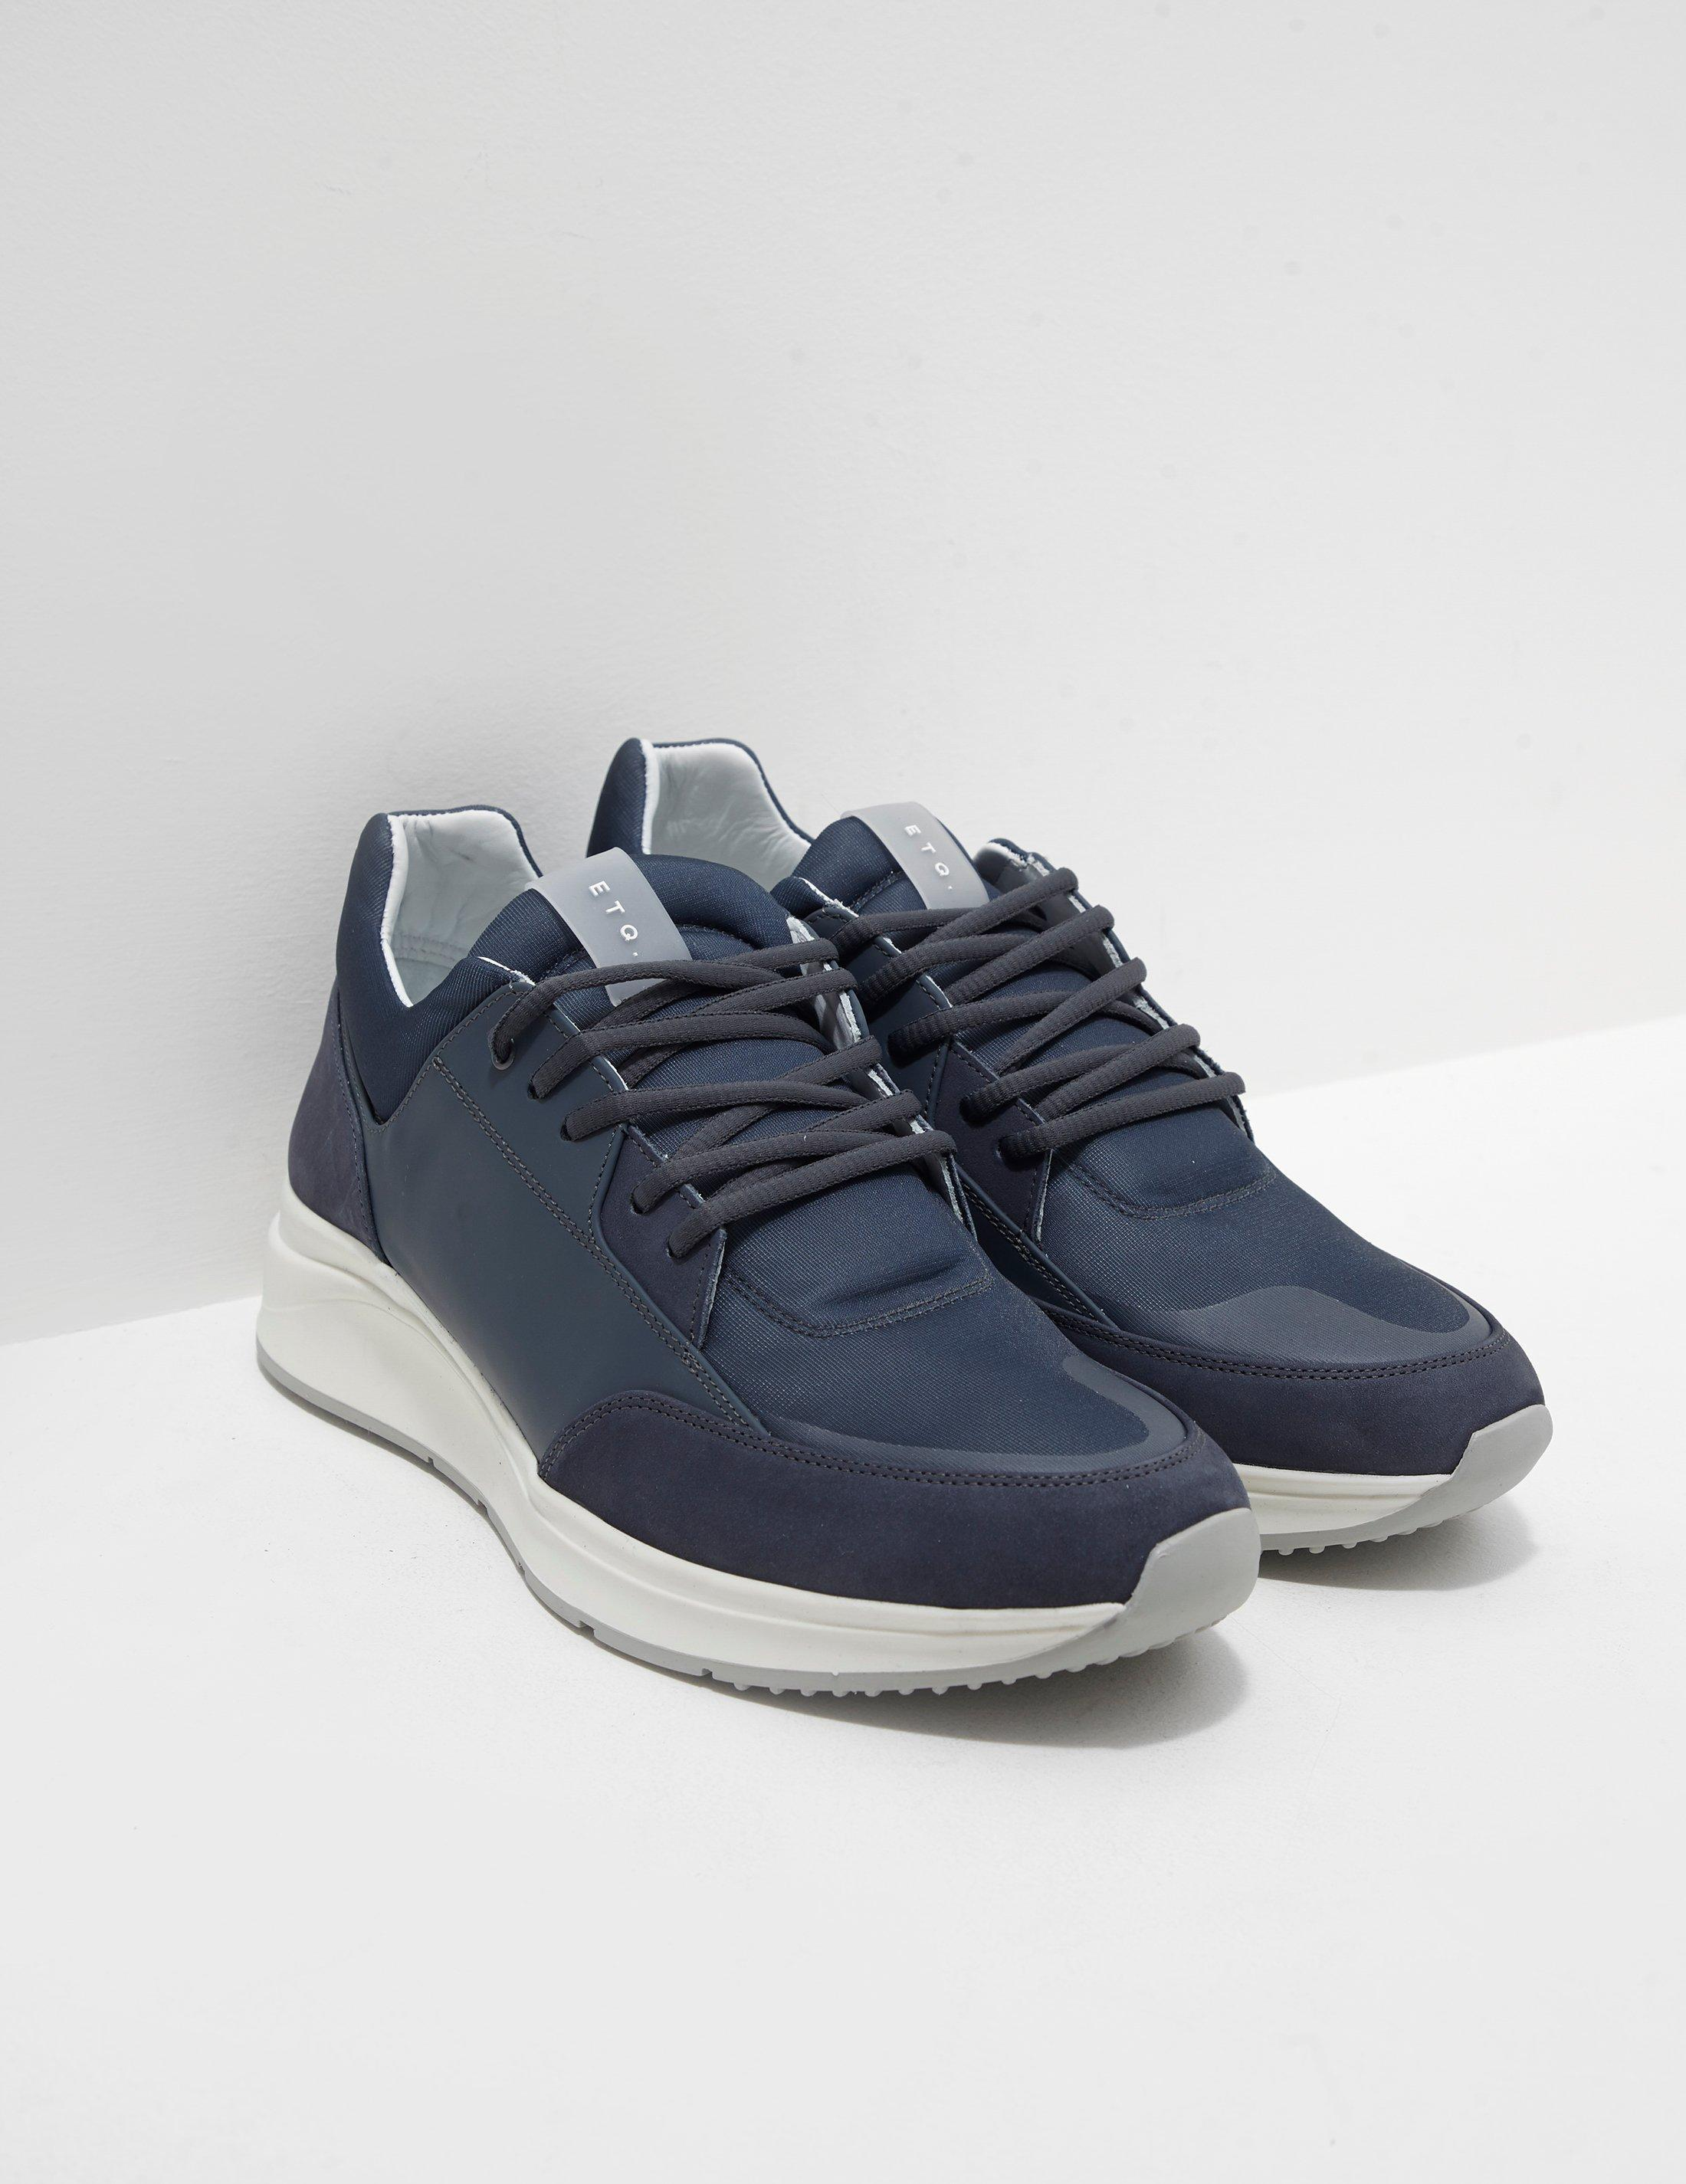 Lyst - ETQ Amsterdam Mens Vortex Trainers Navy Blue in Blue for Men 1941840115f8